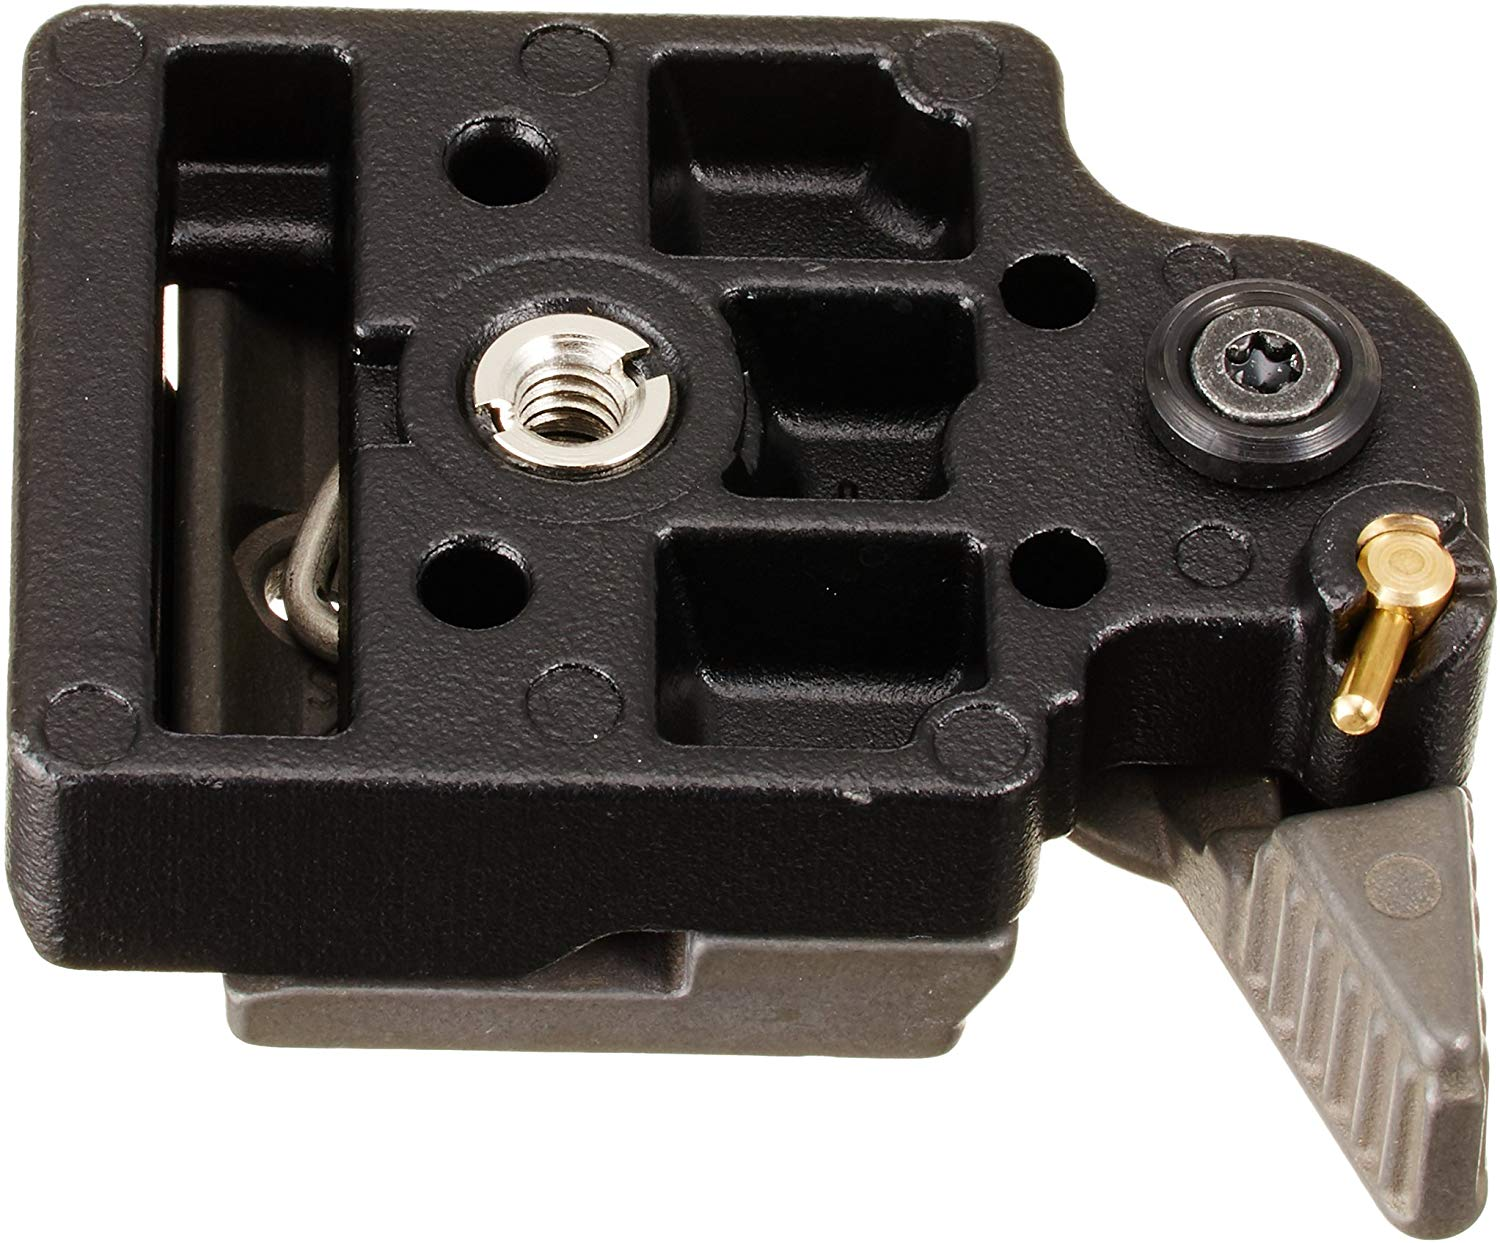 Manfrotto 323 Quick Change Rectangular Plate Adaptor